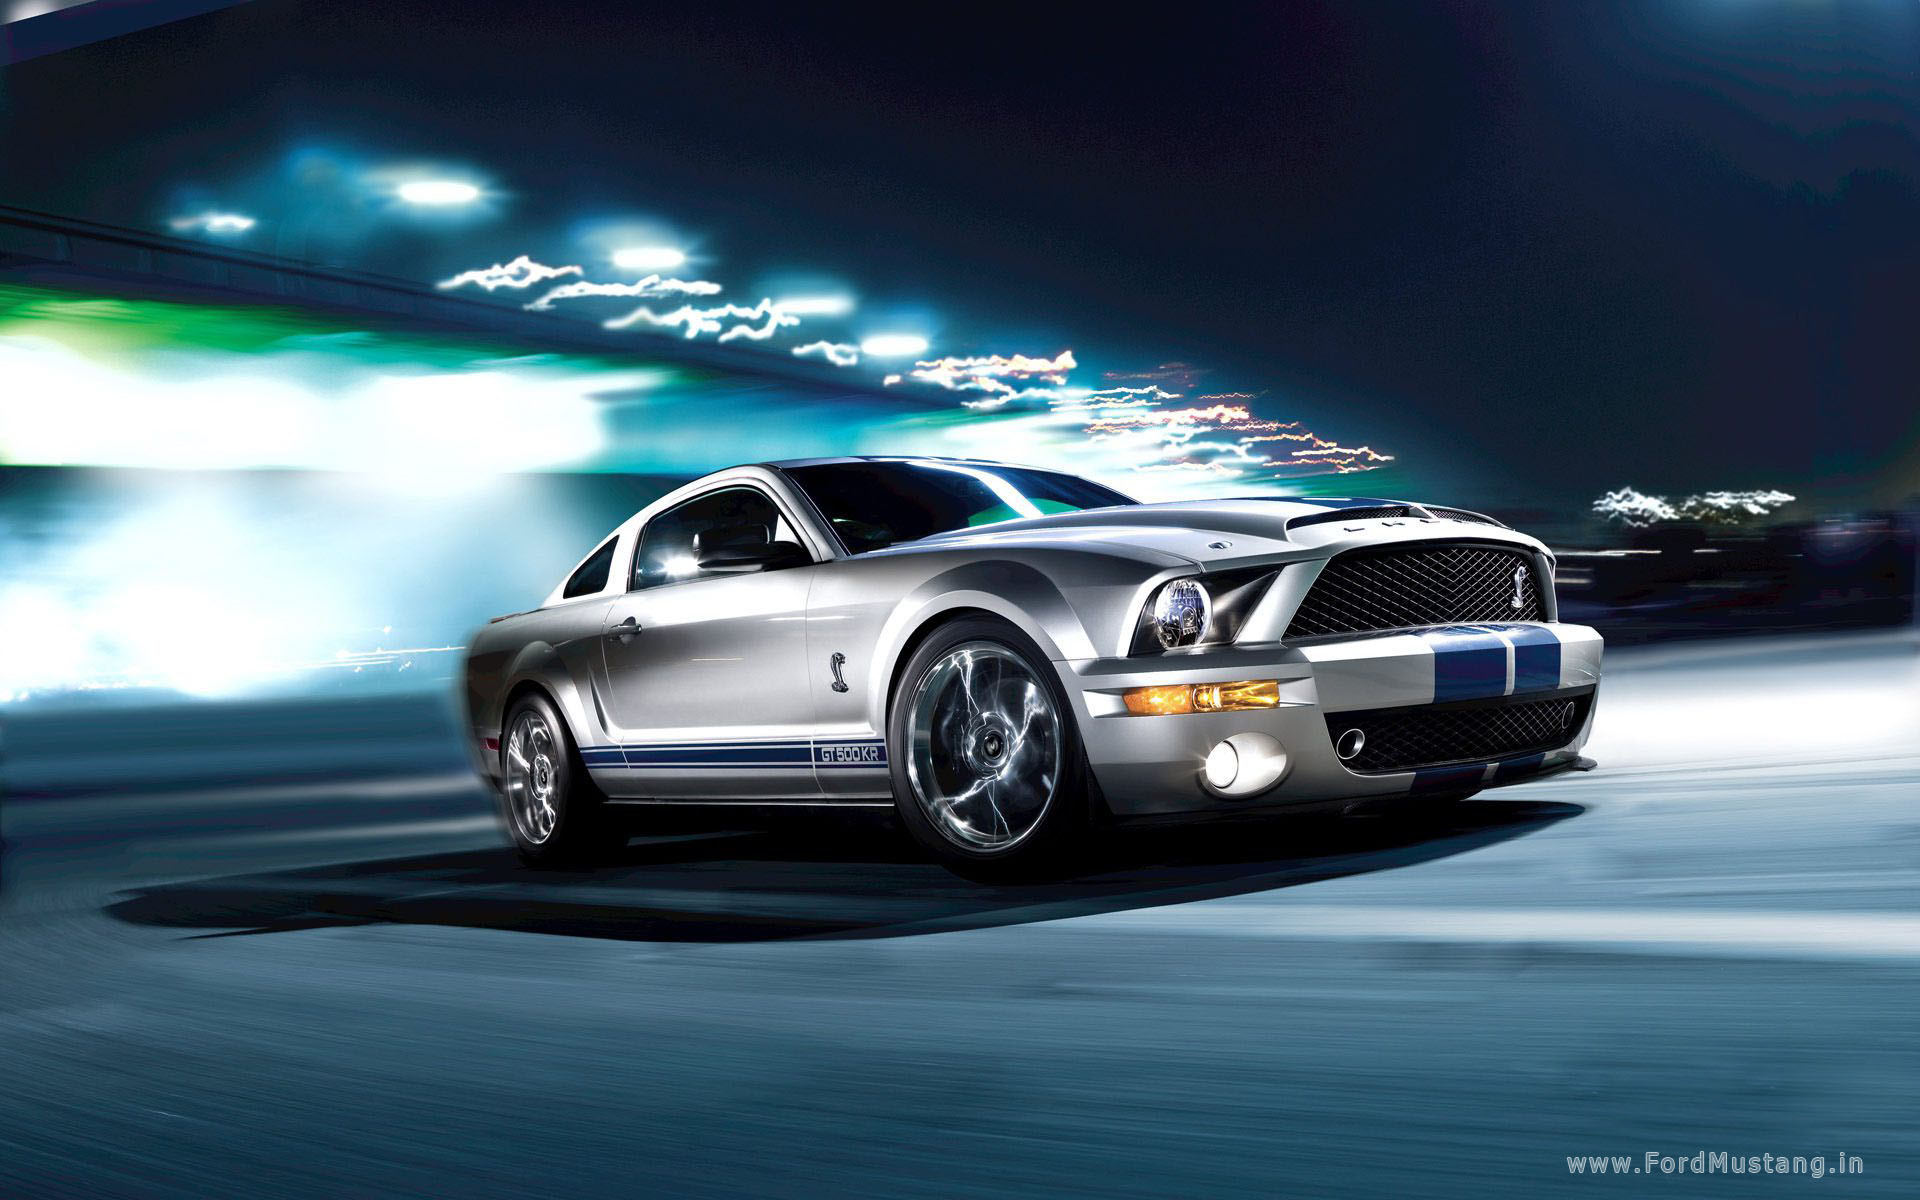 Ford Mustang wallpaper 1 HQ